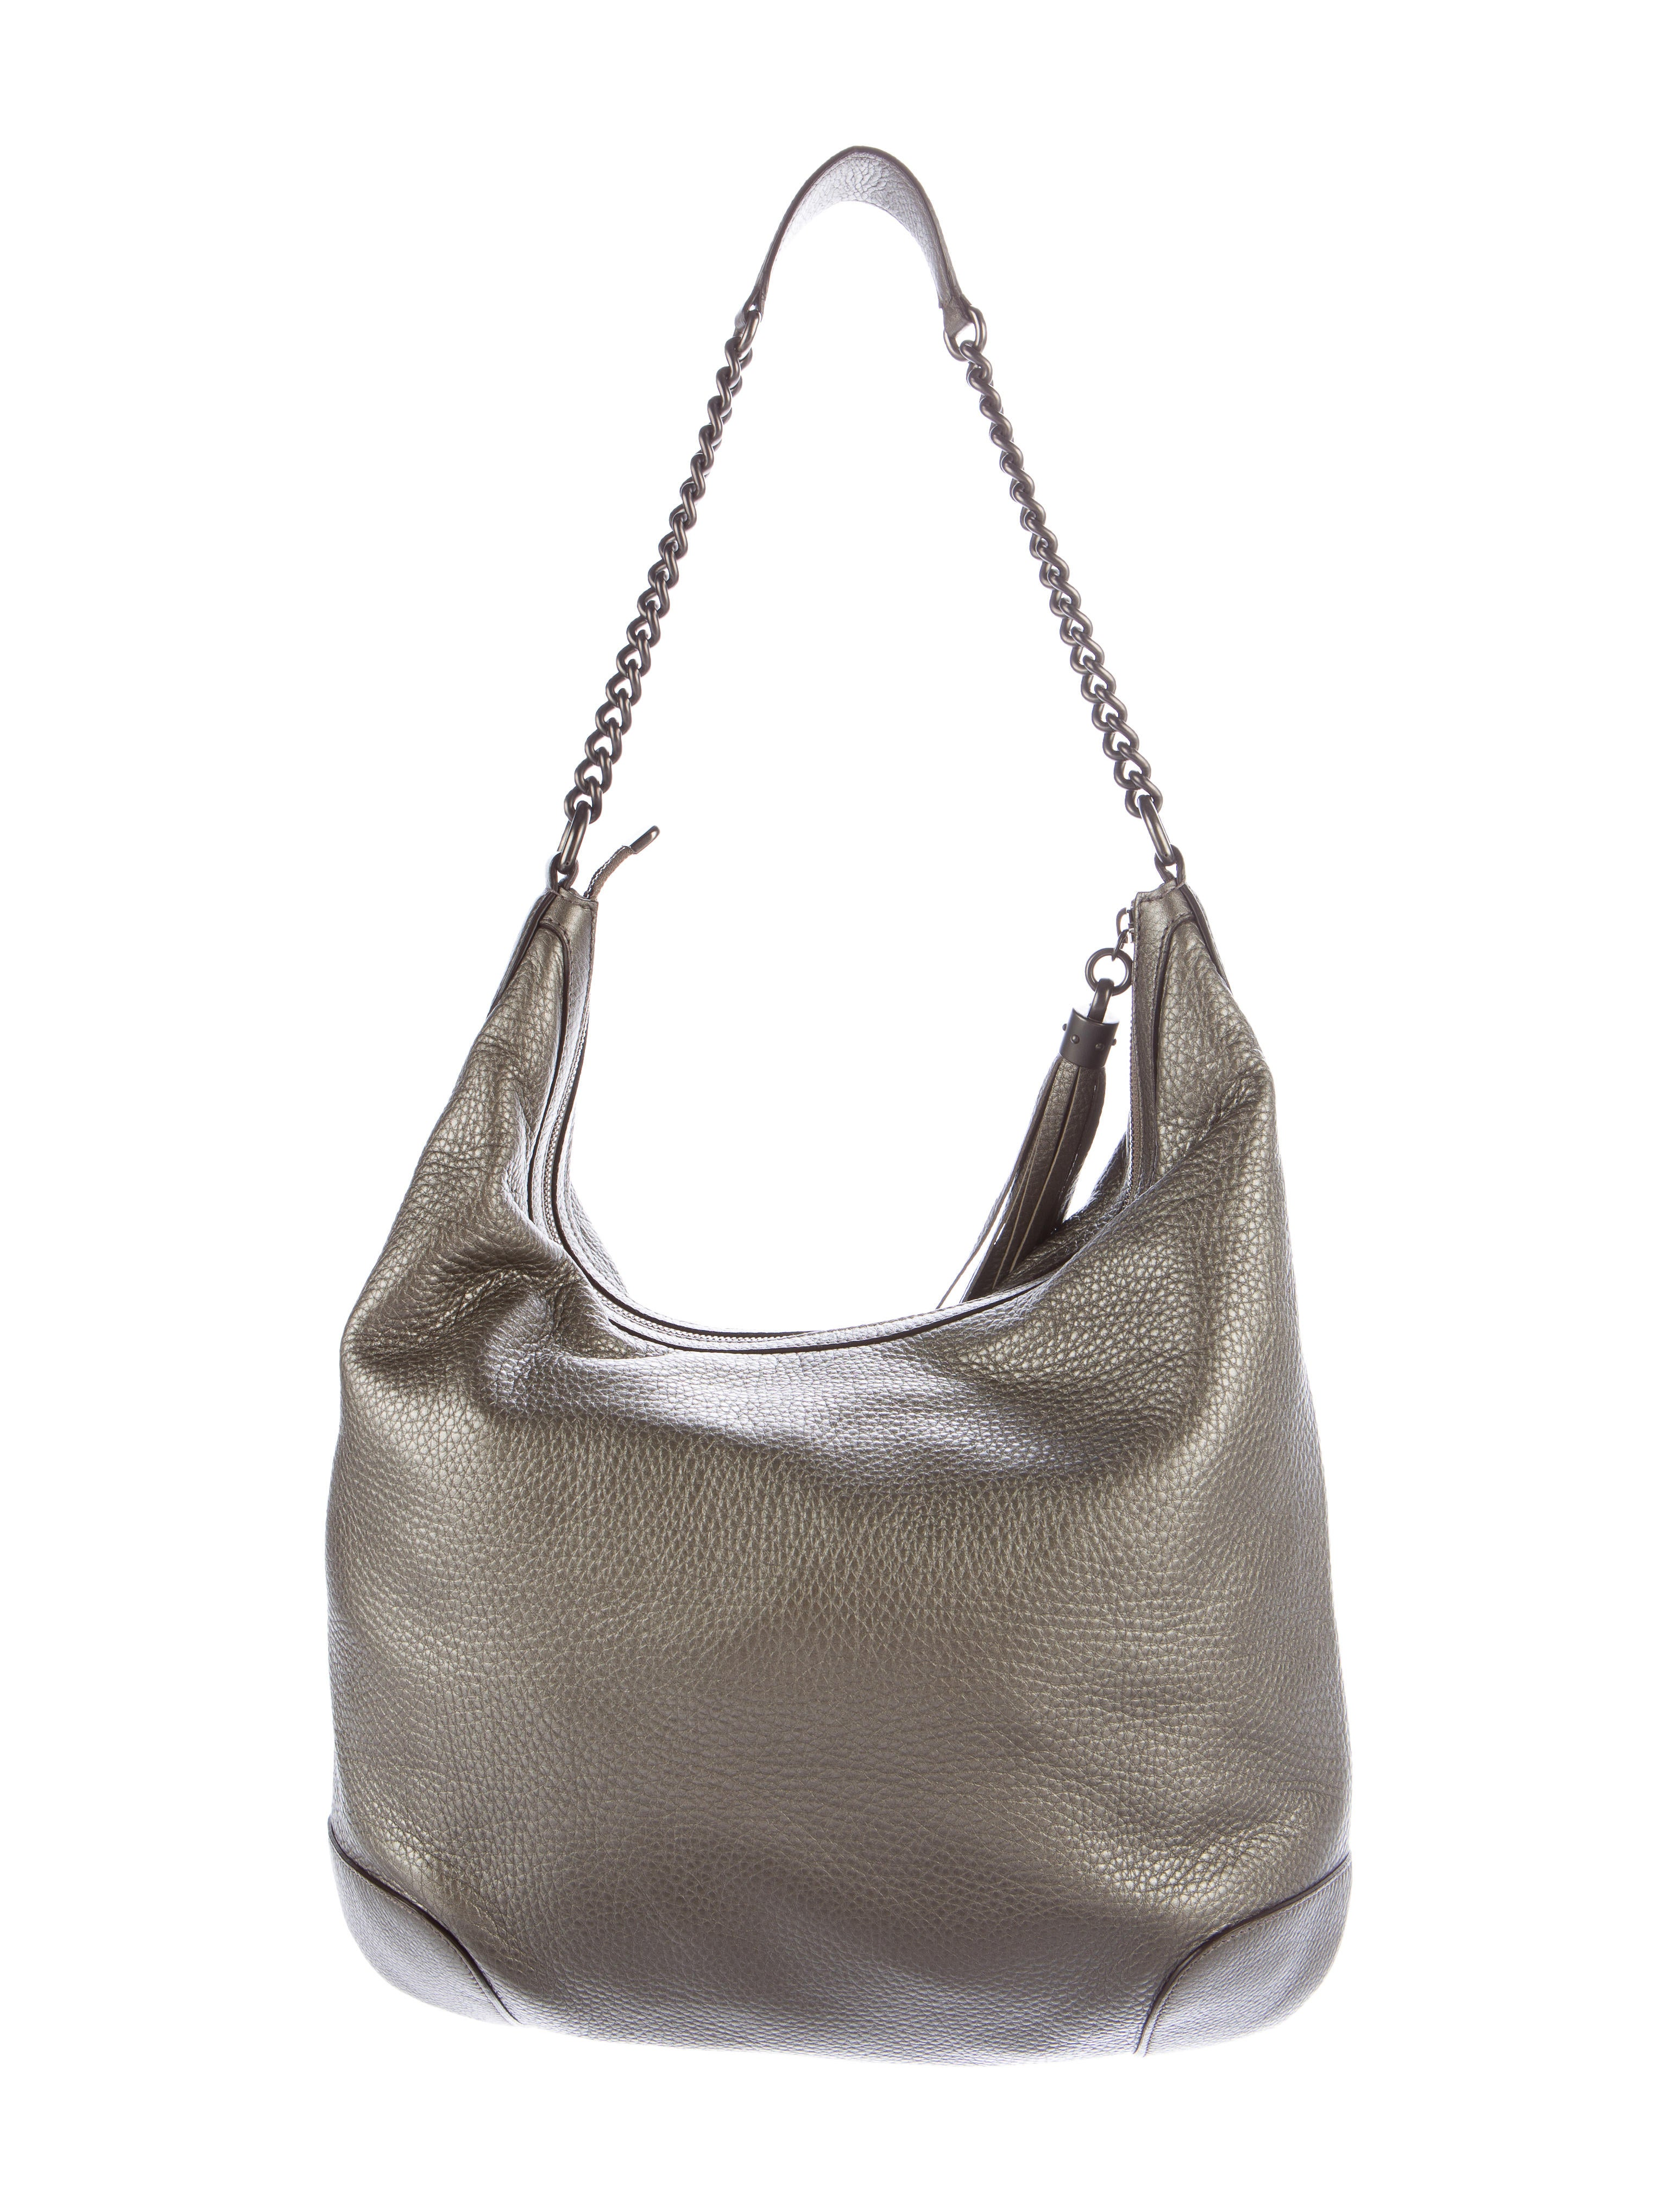 b25d31e304c3dc Gucci Soho Chain Hobo Bags | Stanford Center for Opportunity Policy ...